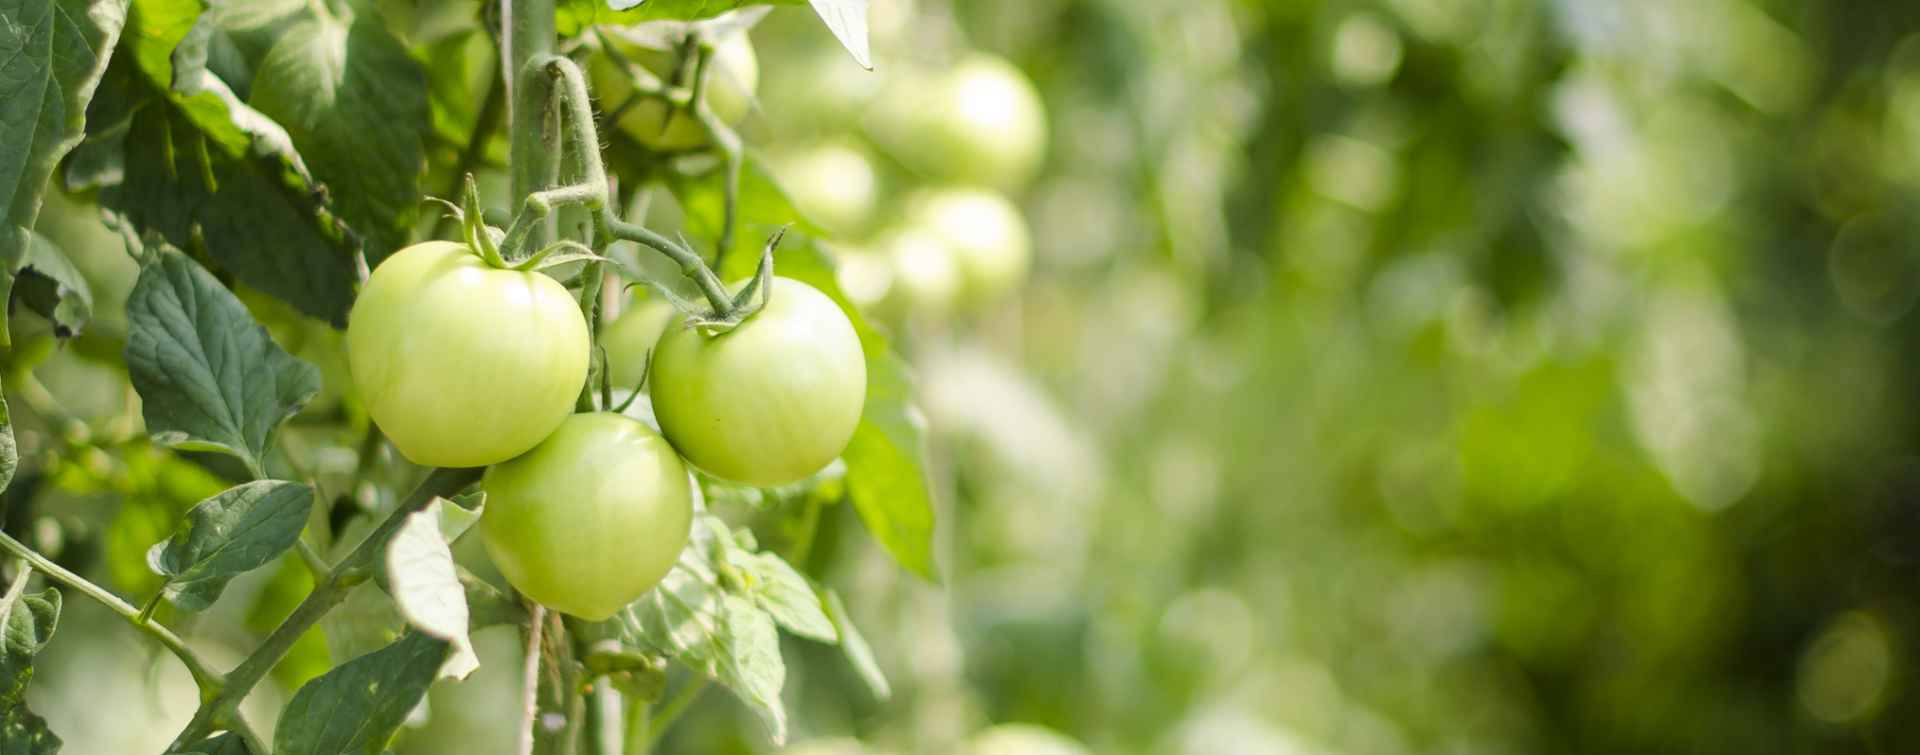 Clubs - Gardening Tomatoes